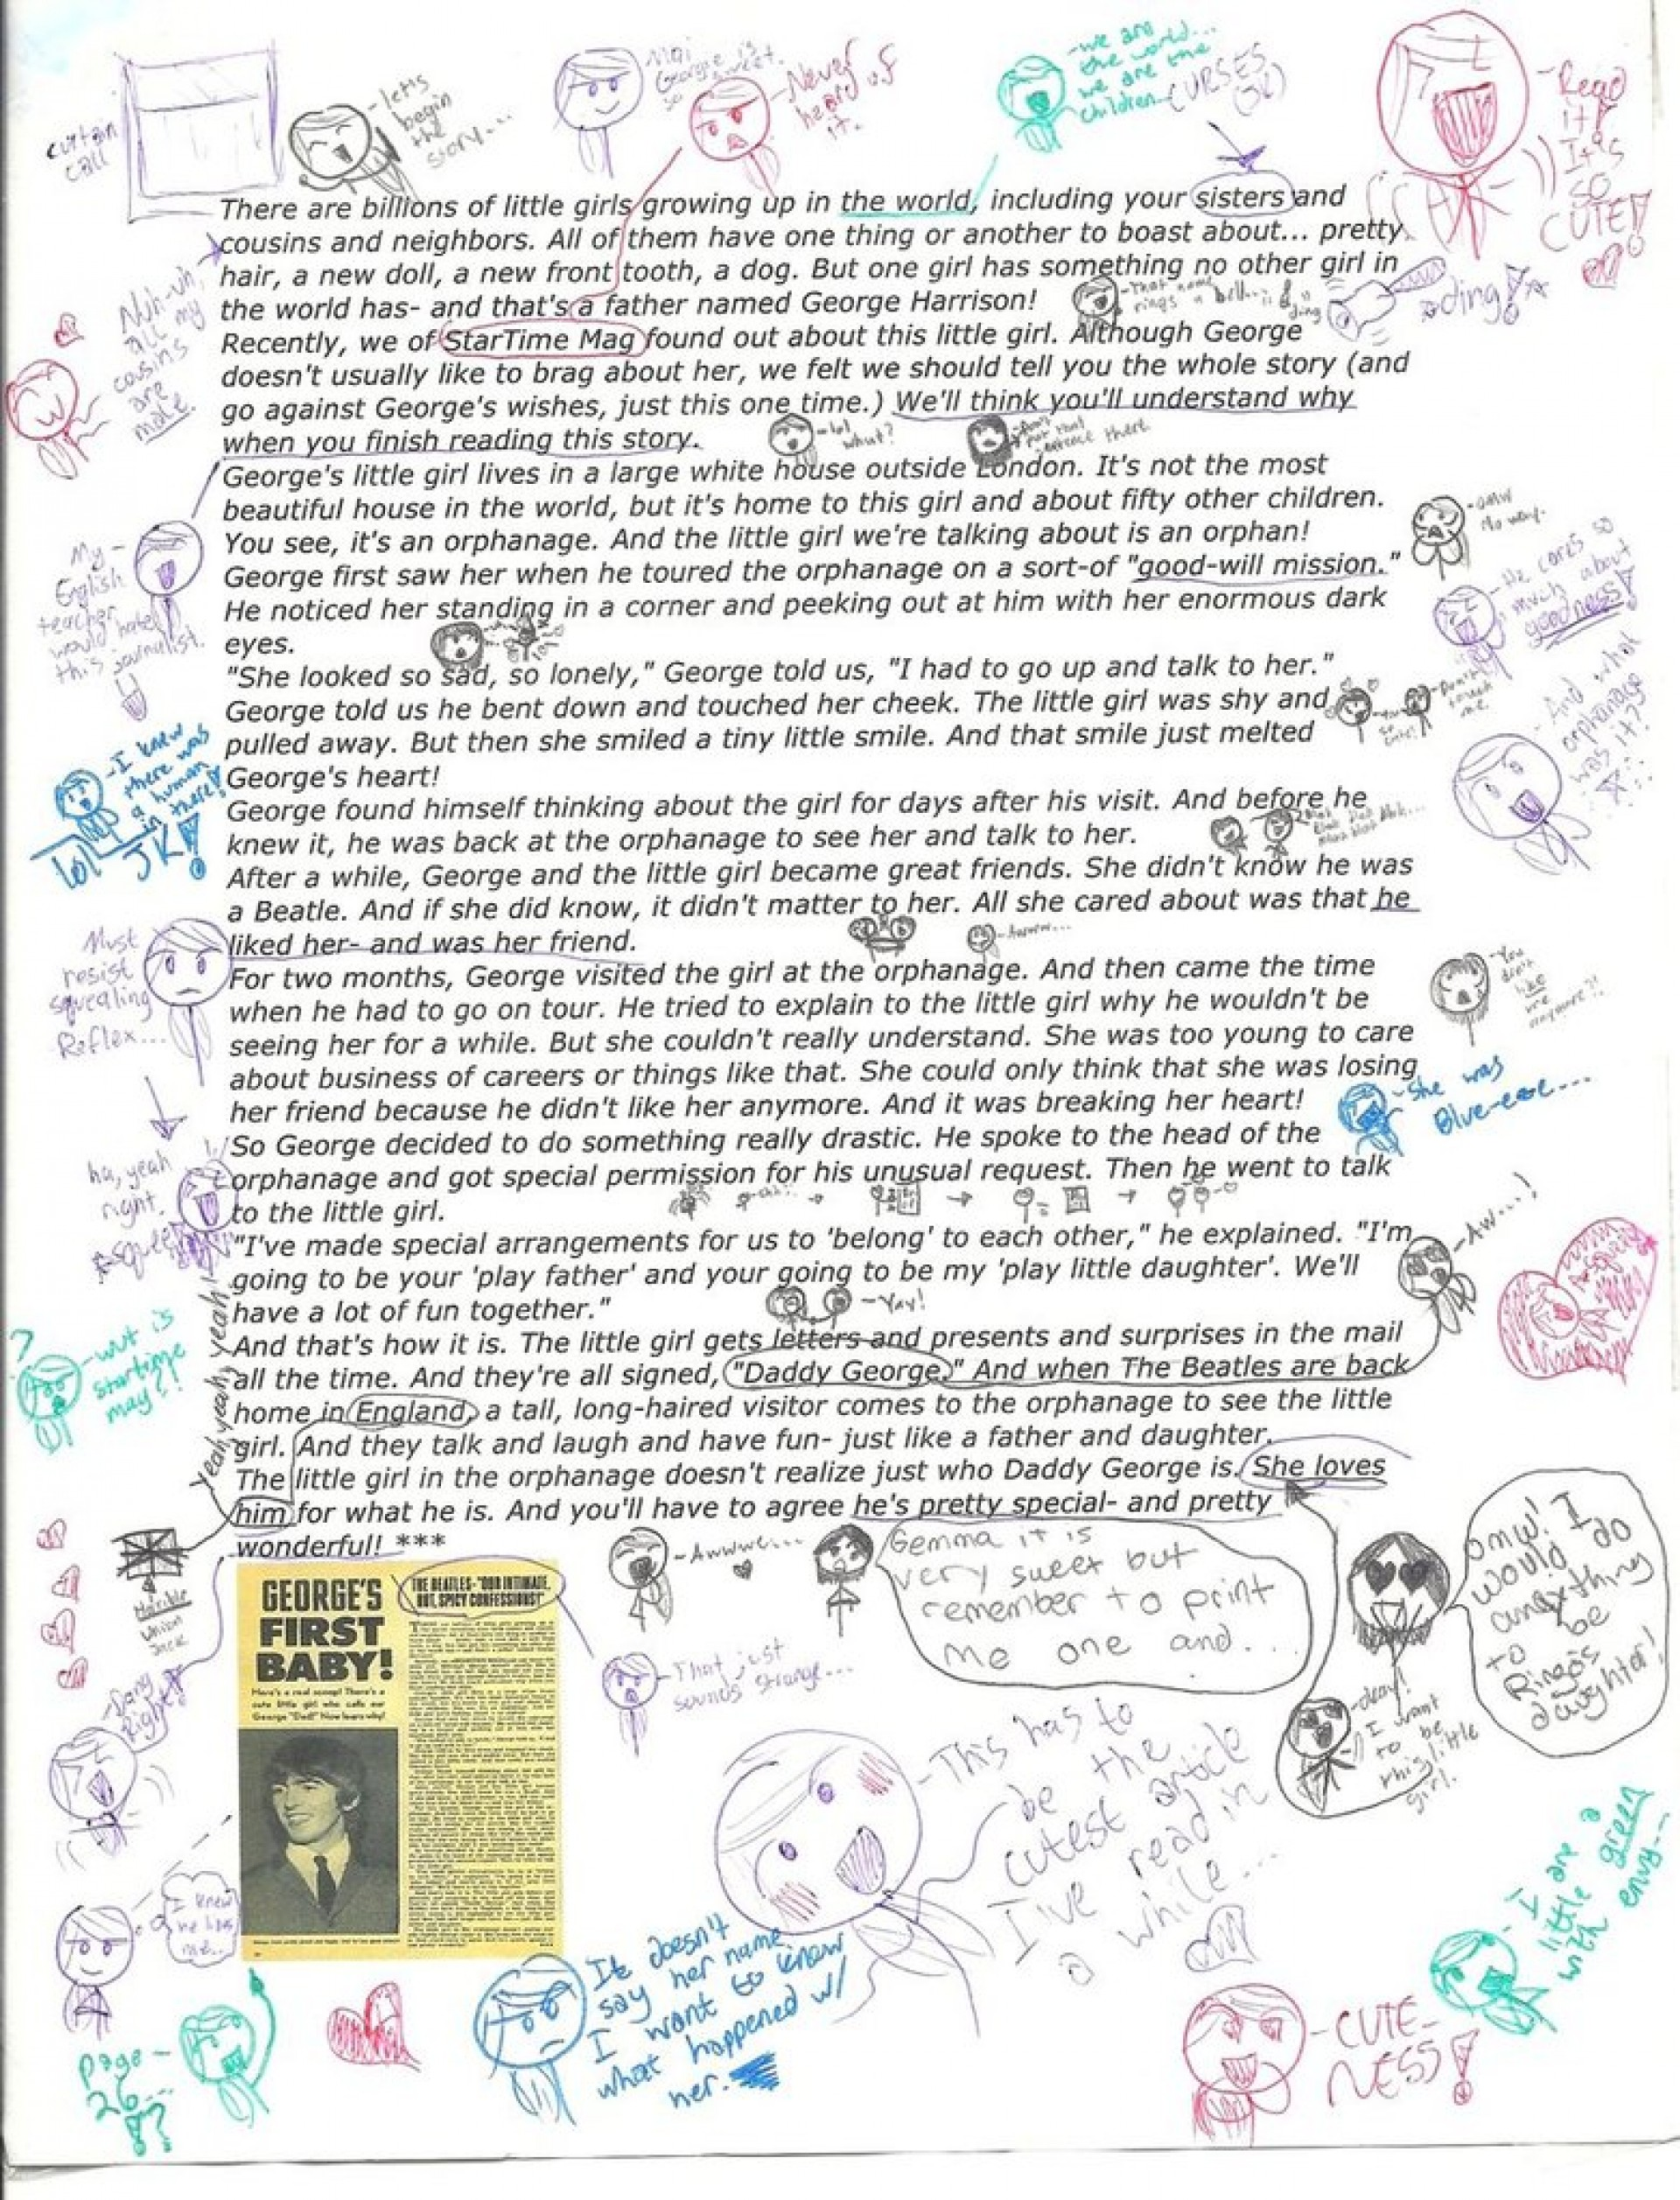 019 My Heavily Annotated Article From And Old Magazine By Dontmindmyname D553alj How To Annotate An Essay Wondrous A Movie In Critical 1920